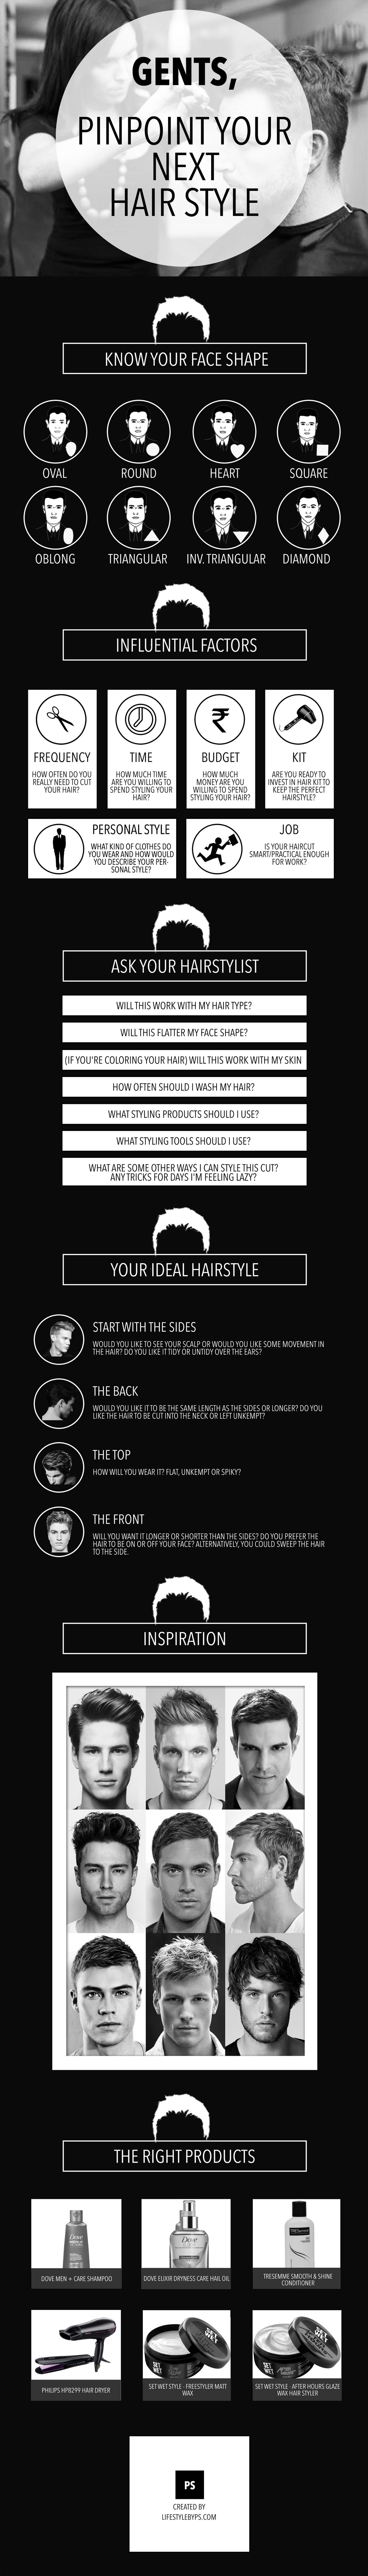 Picking A New Mens Hairstyle Visual